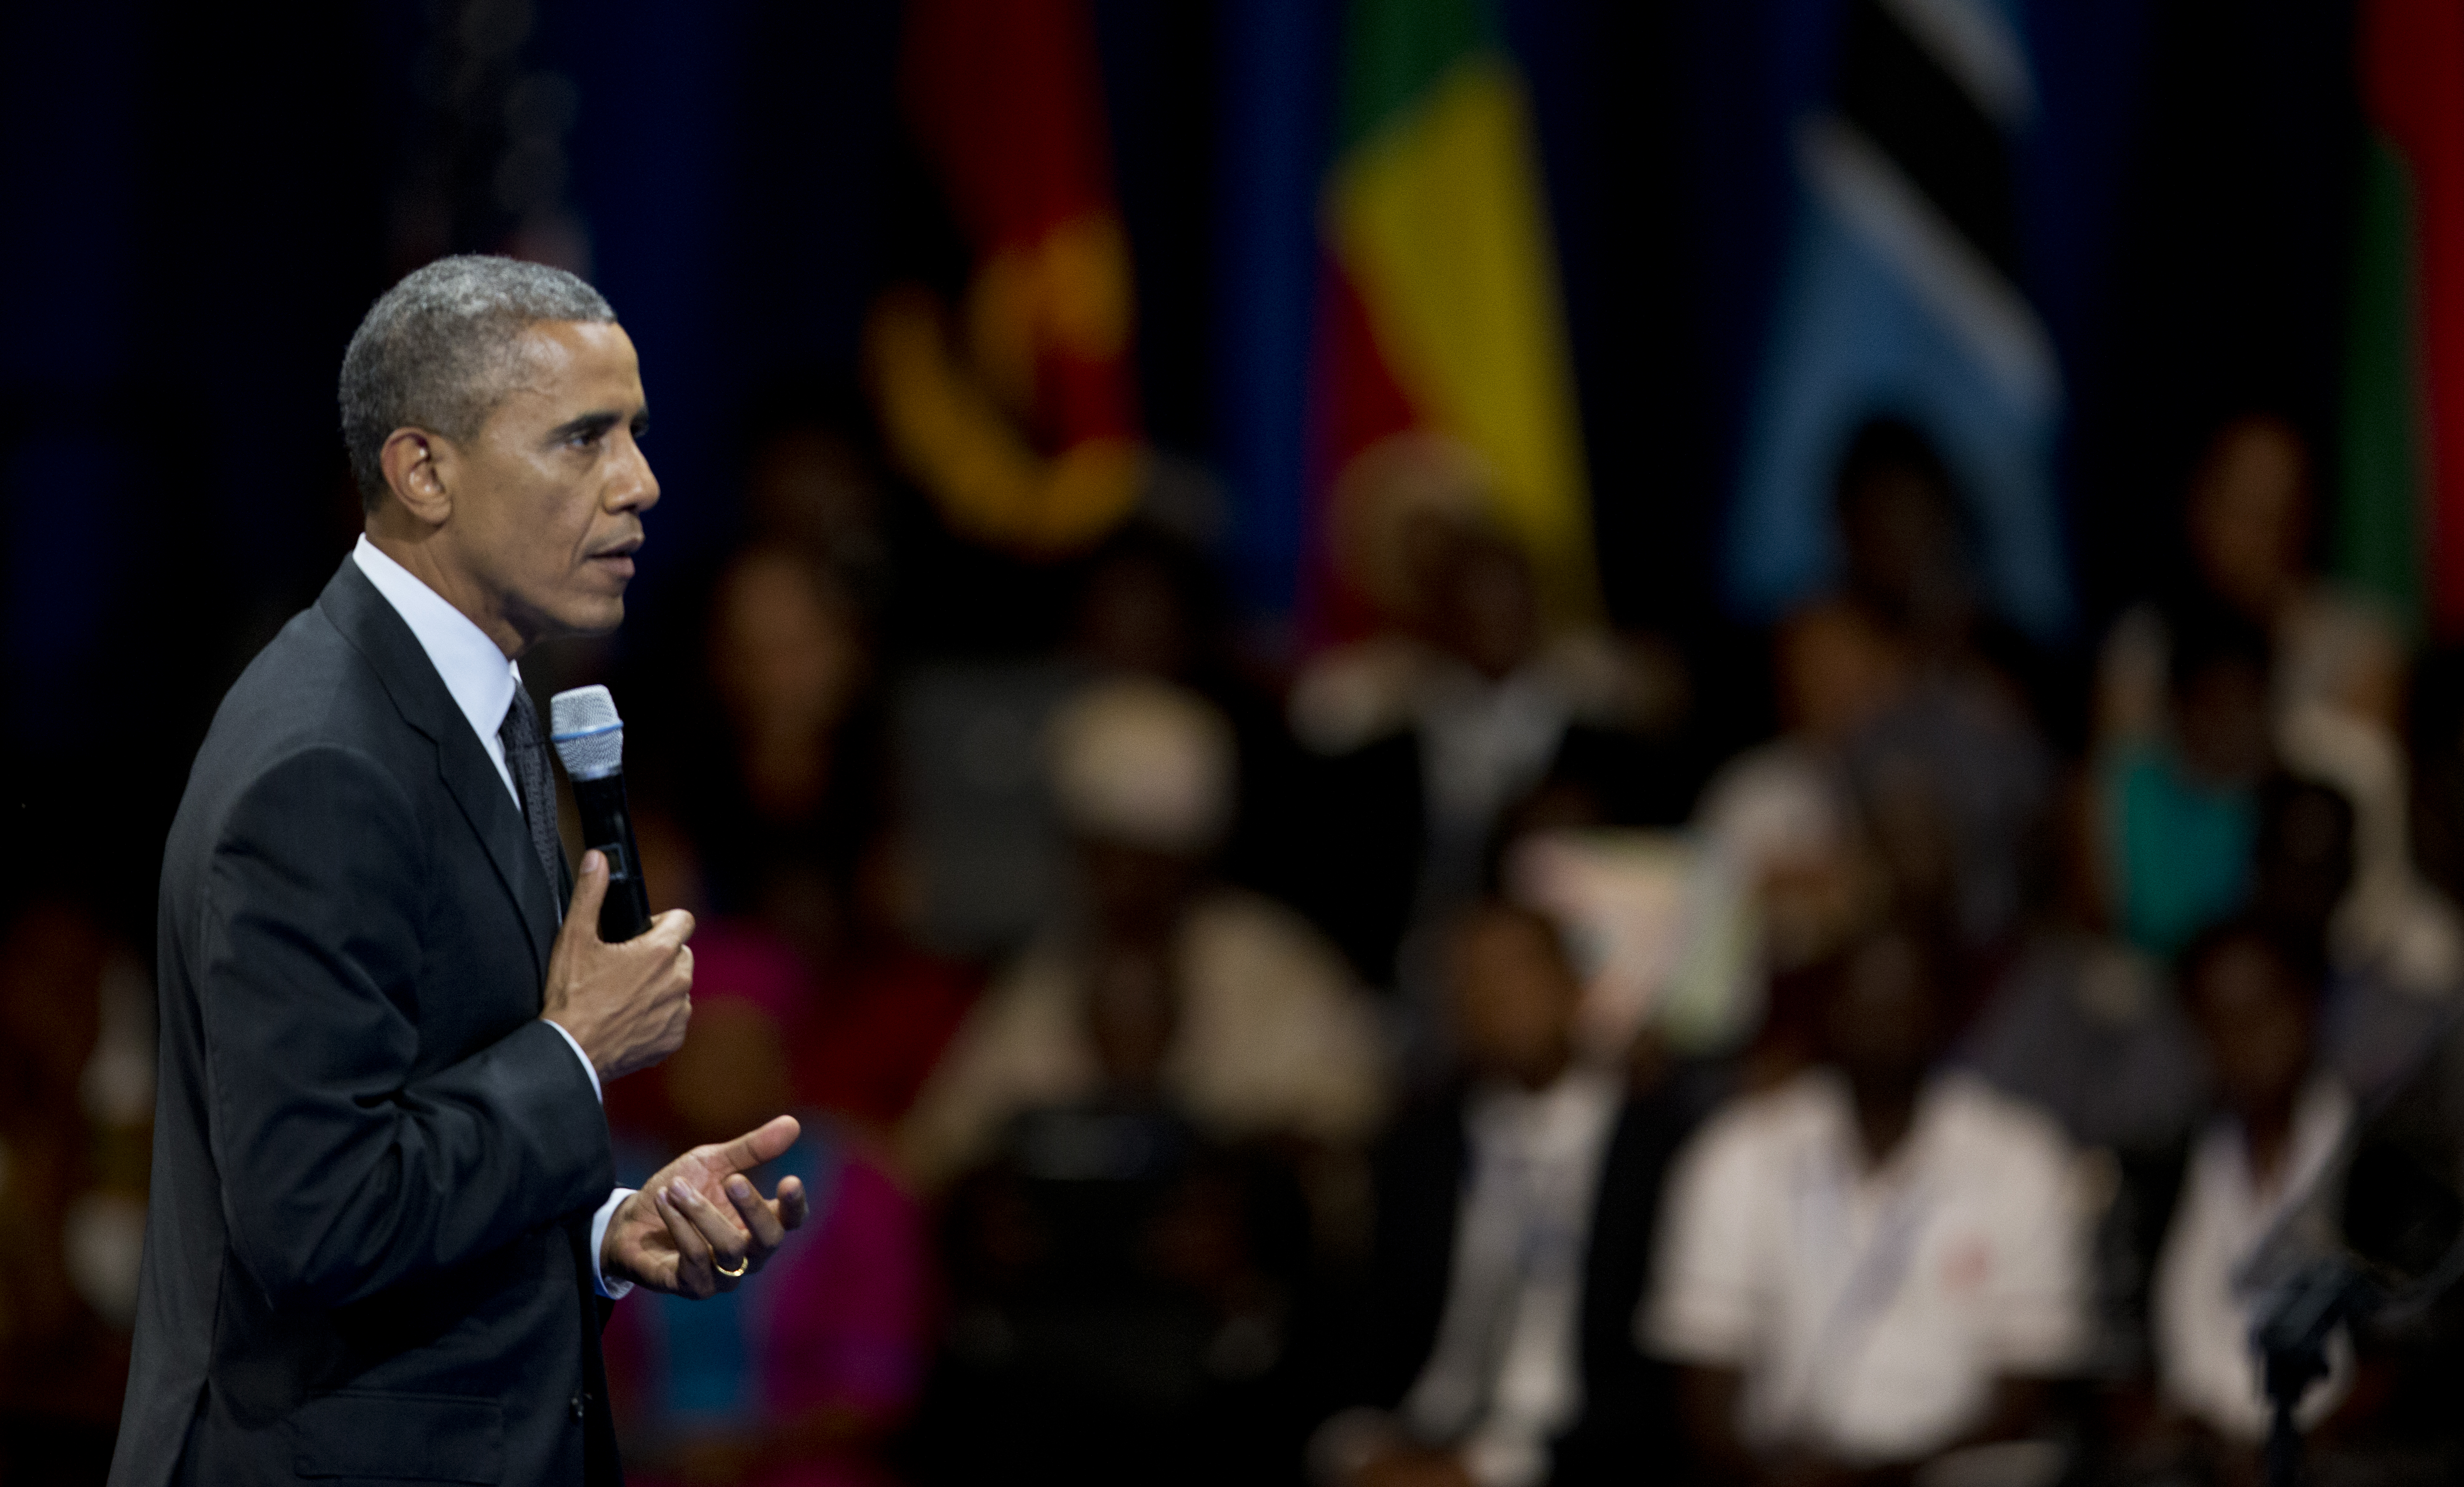 President Barack Obama speaks to participants of the Presidential Summit for the Washington Fellowship for Young African Leaders in Washington on July 28, 2014.